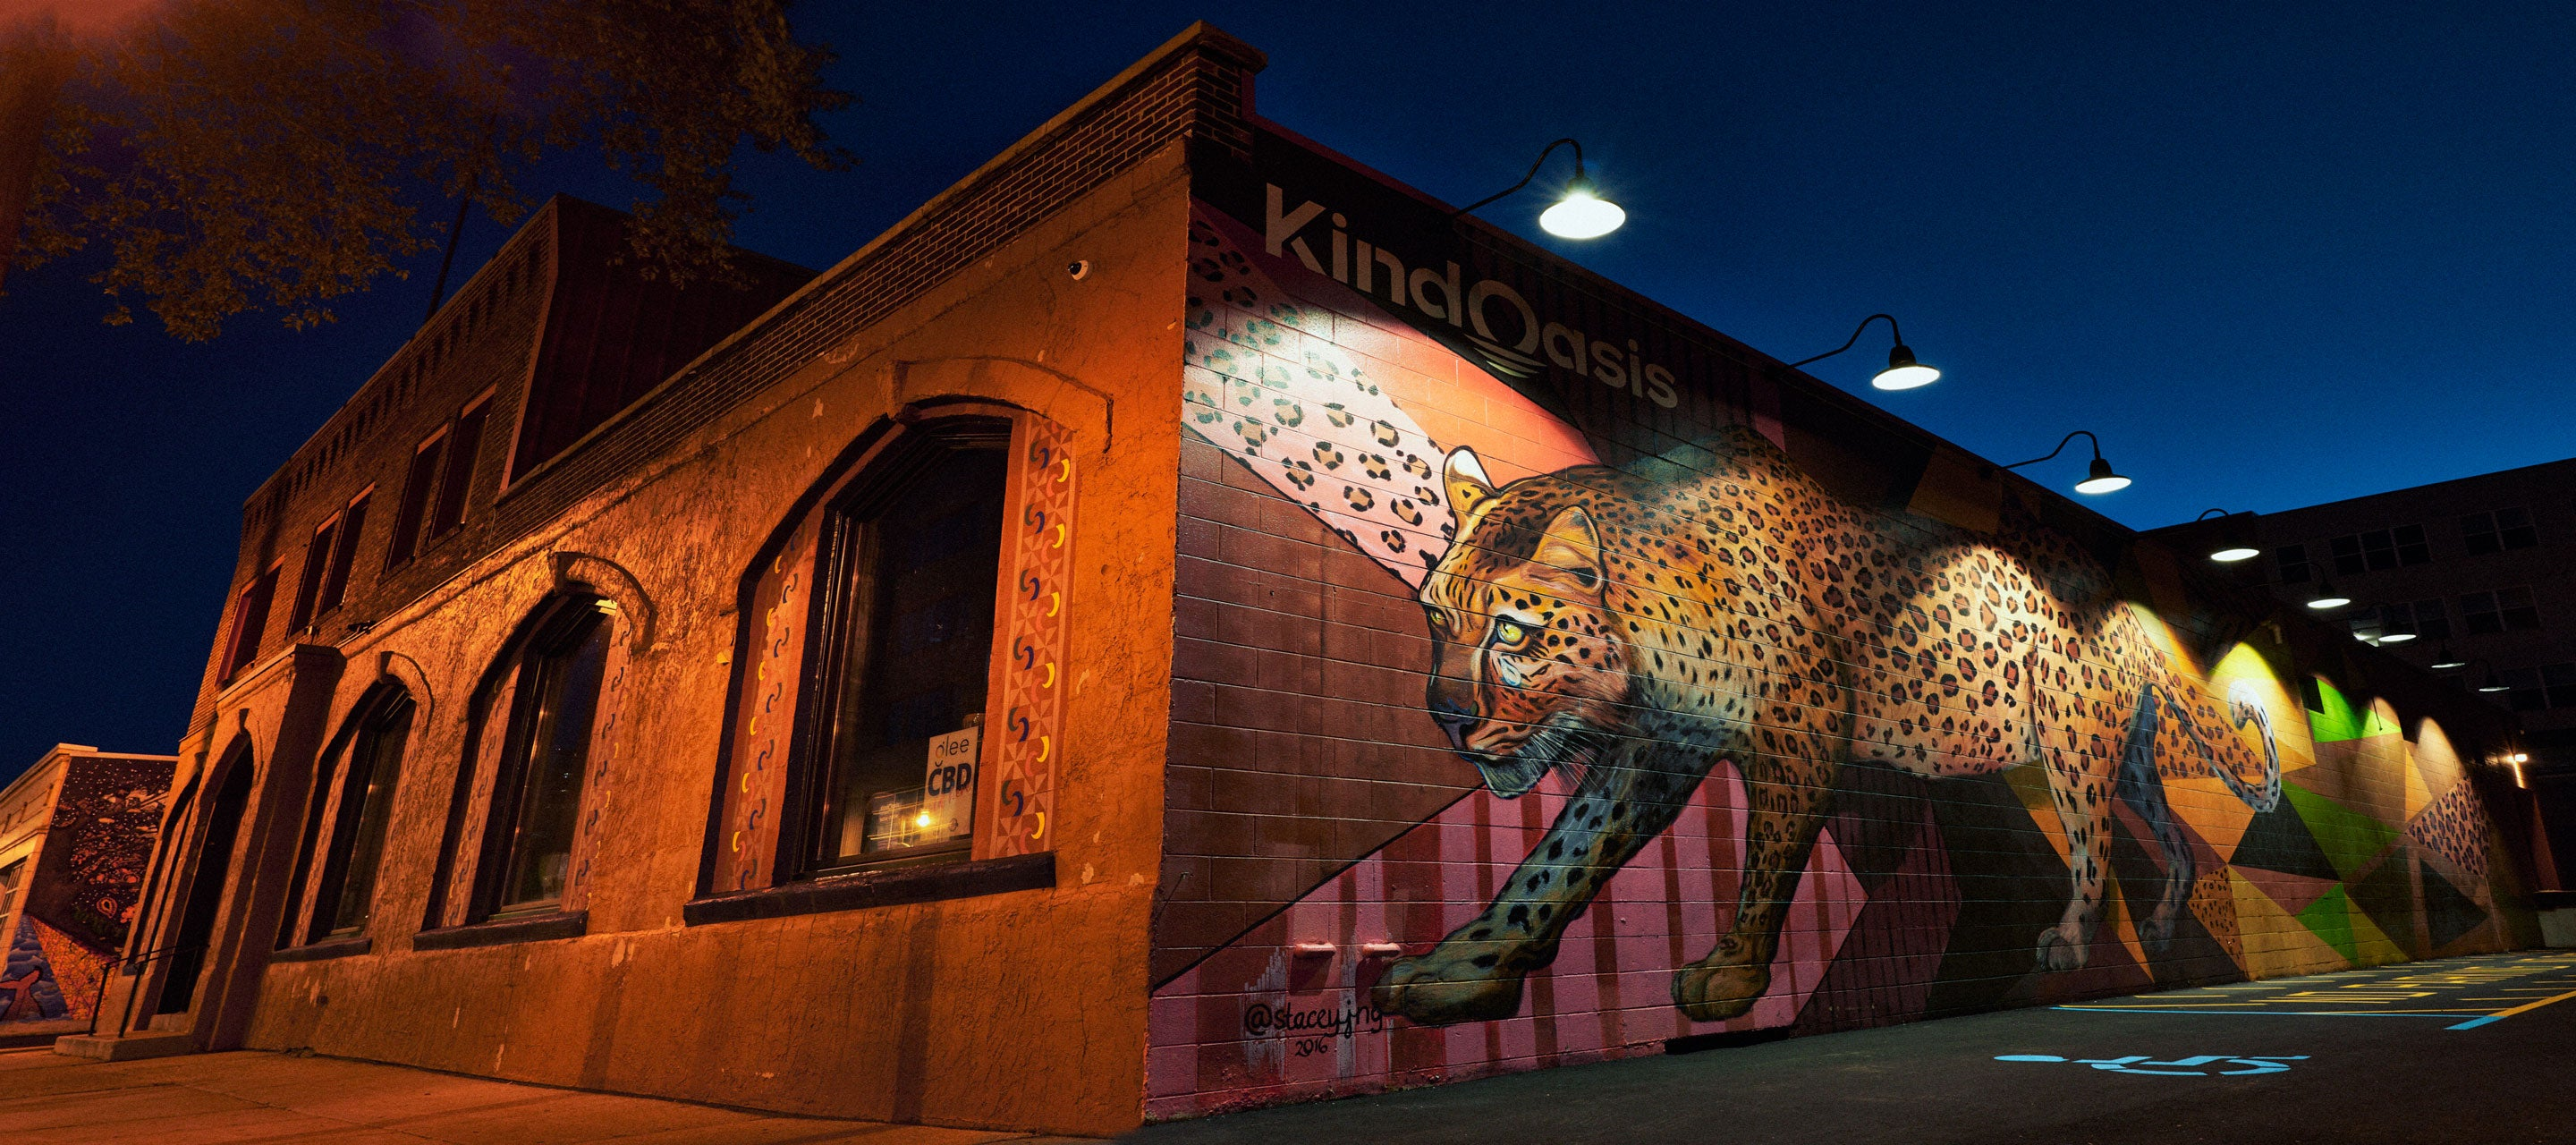 Kind Oasis Mural East Side Milwaukee Contact us CBD WI